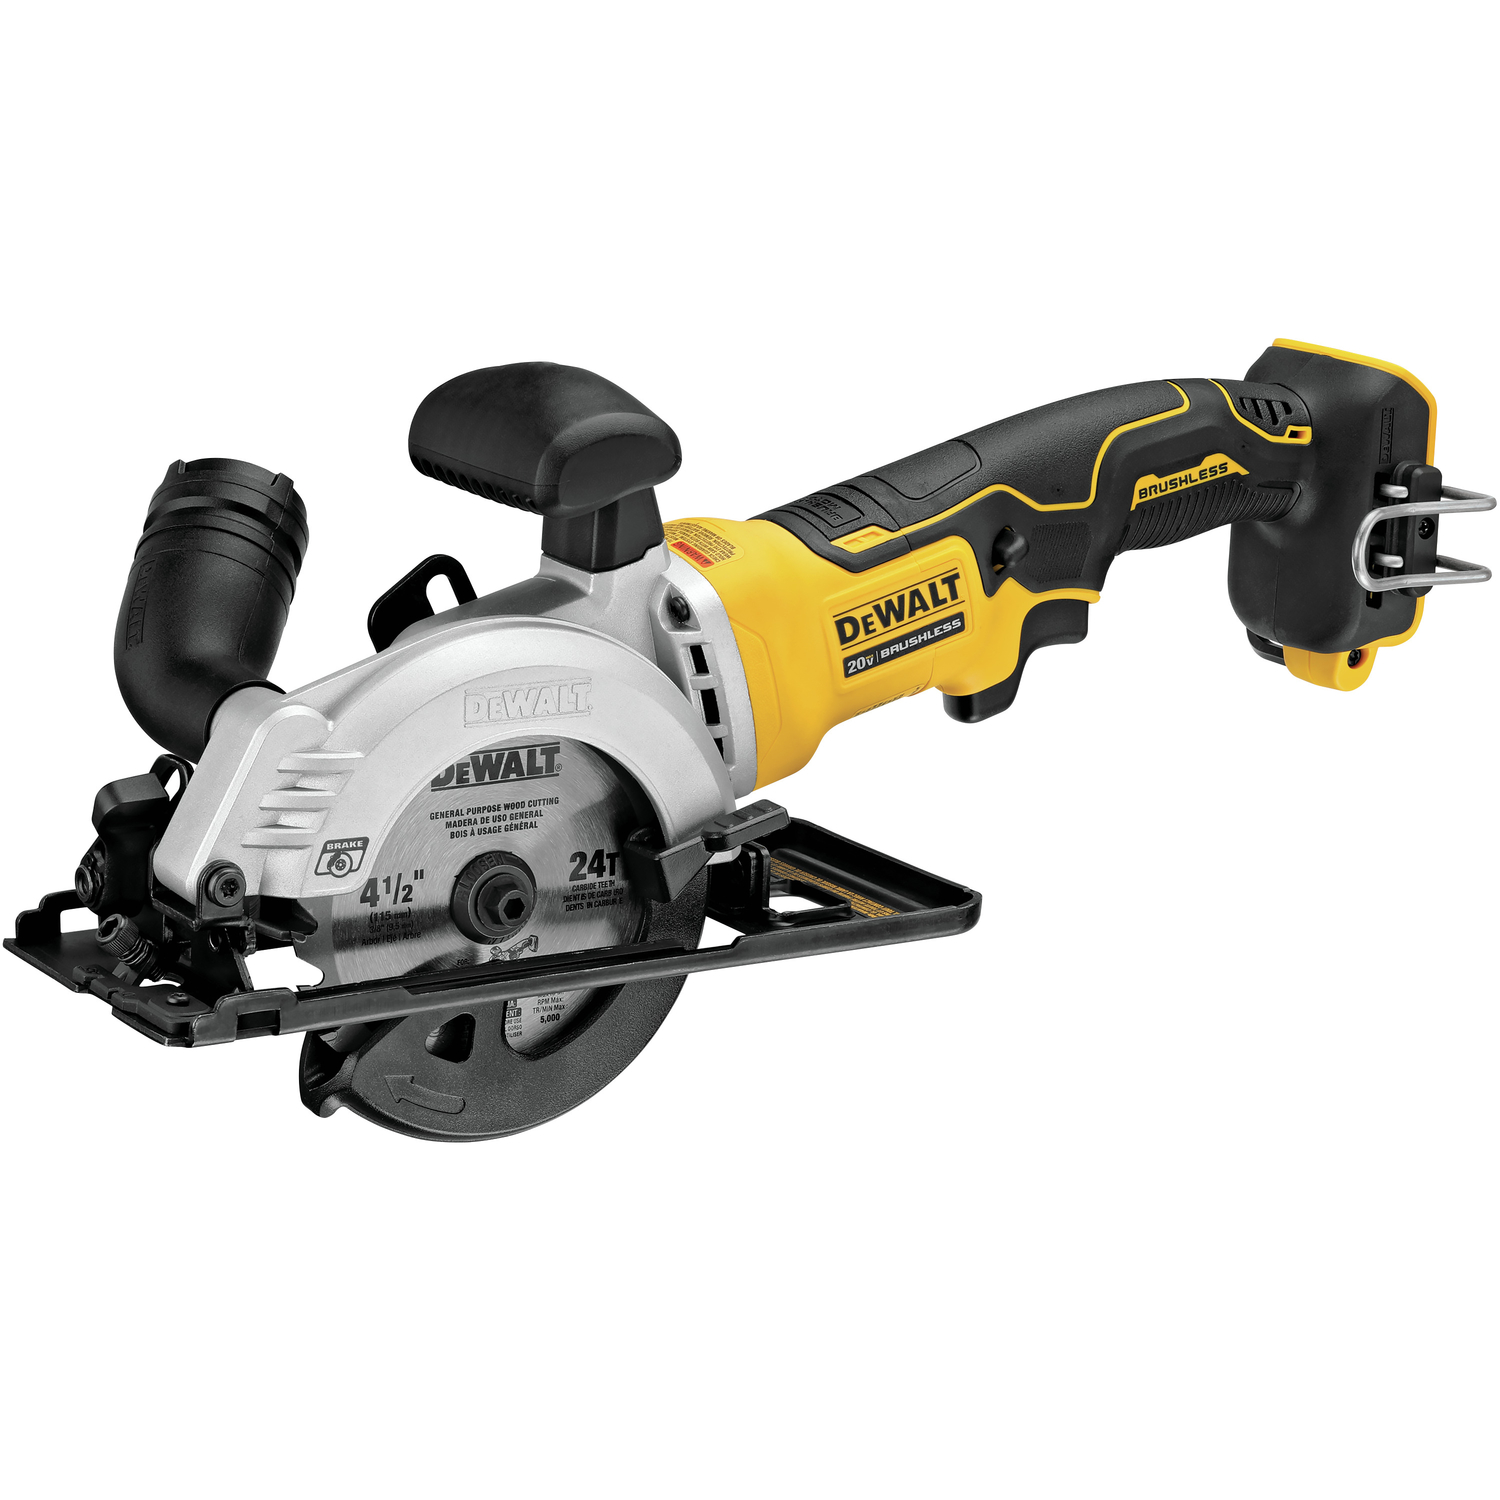 dewalt atomic 20 volt 4 1 2 in cordless brushless compact circular saw tool only